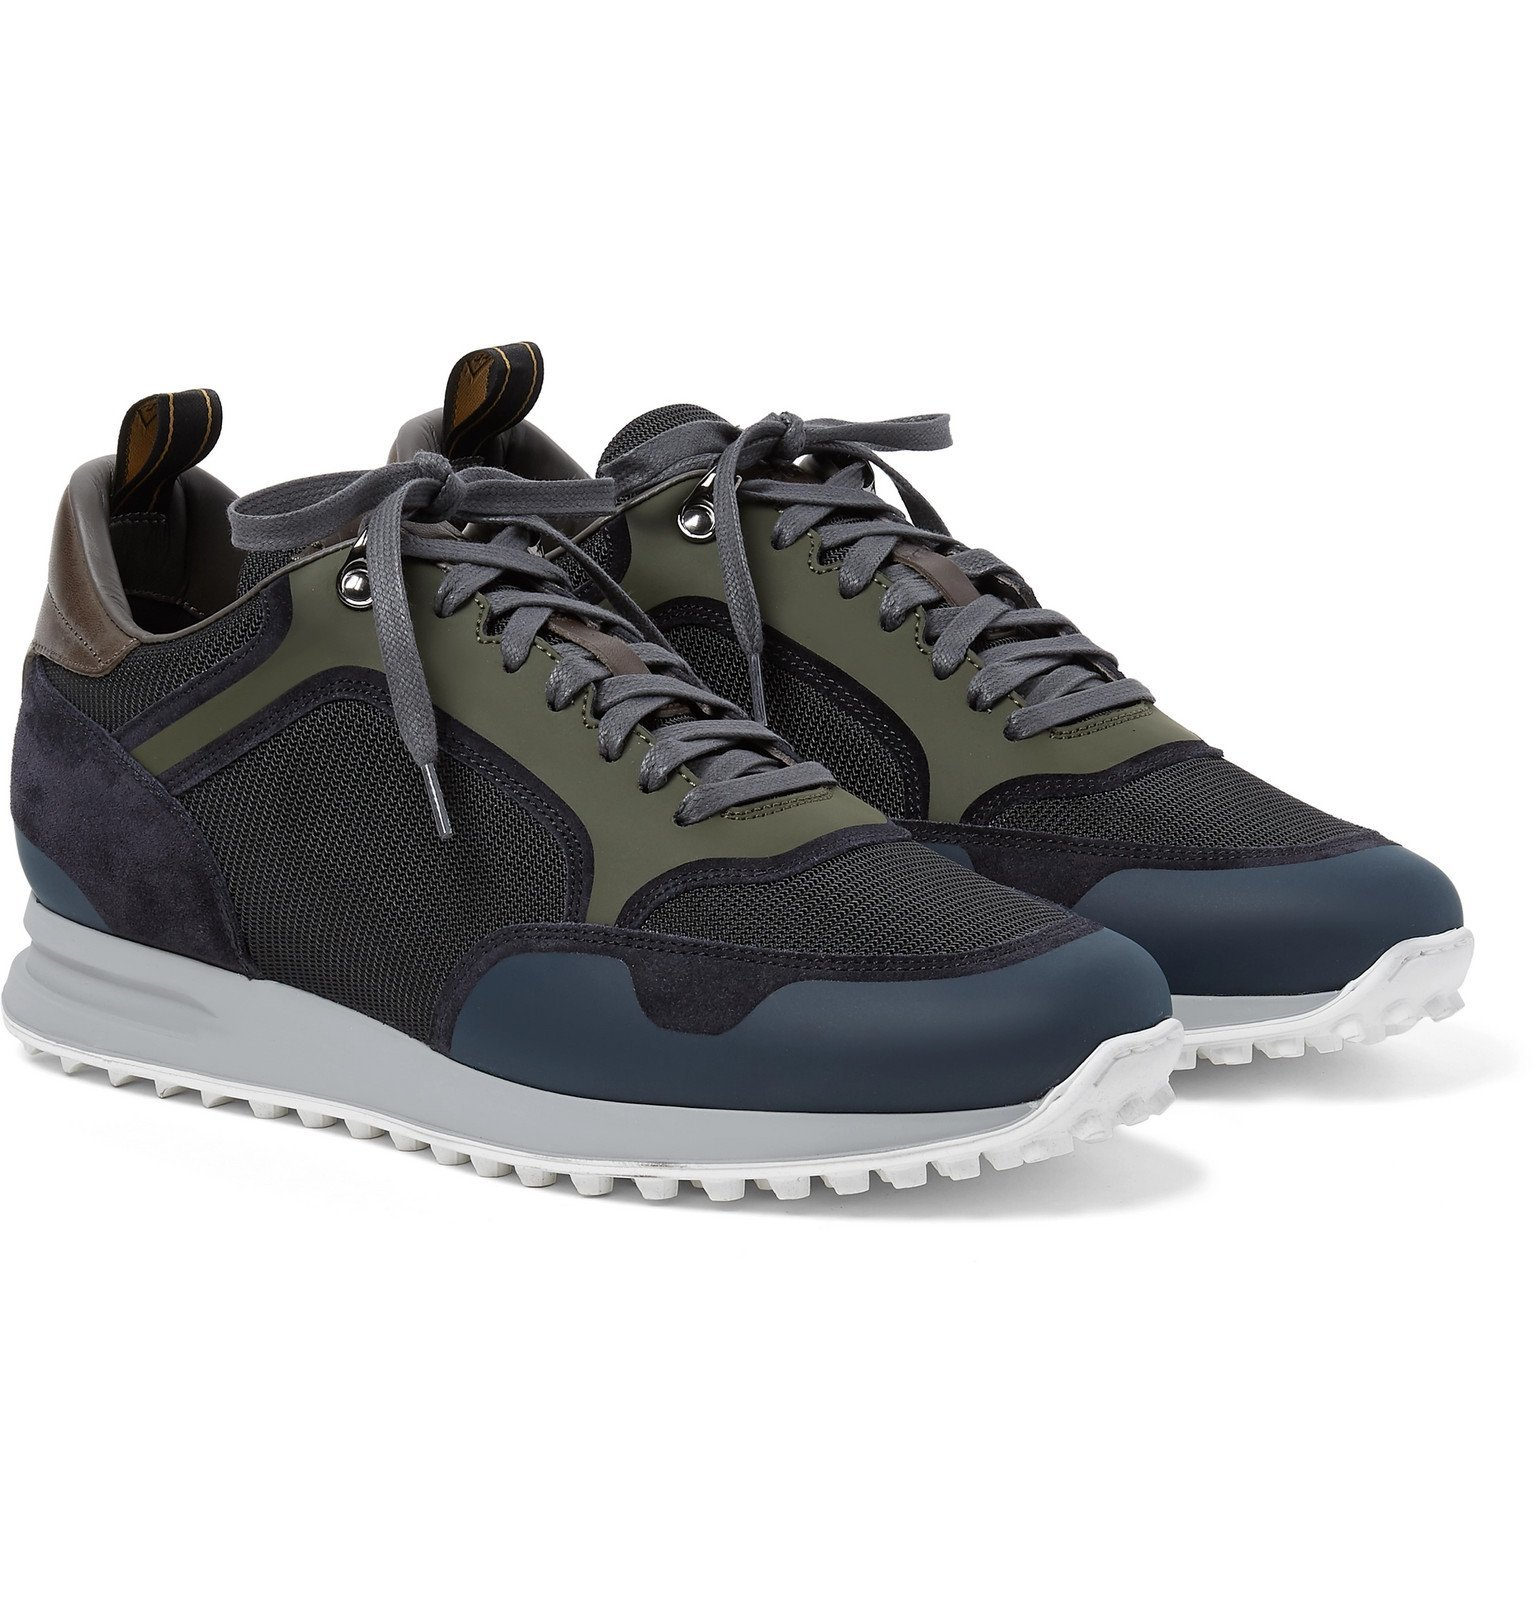 Dunhill - Radial Runner Leather and Suede-Trimmed Mesh Sneakers - Blue